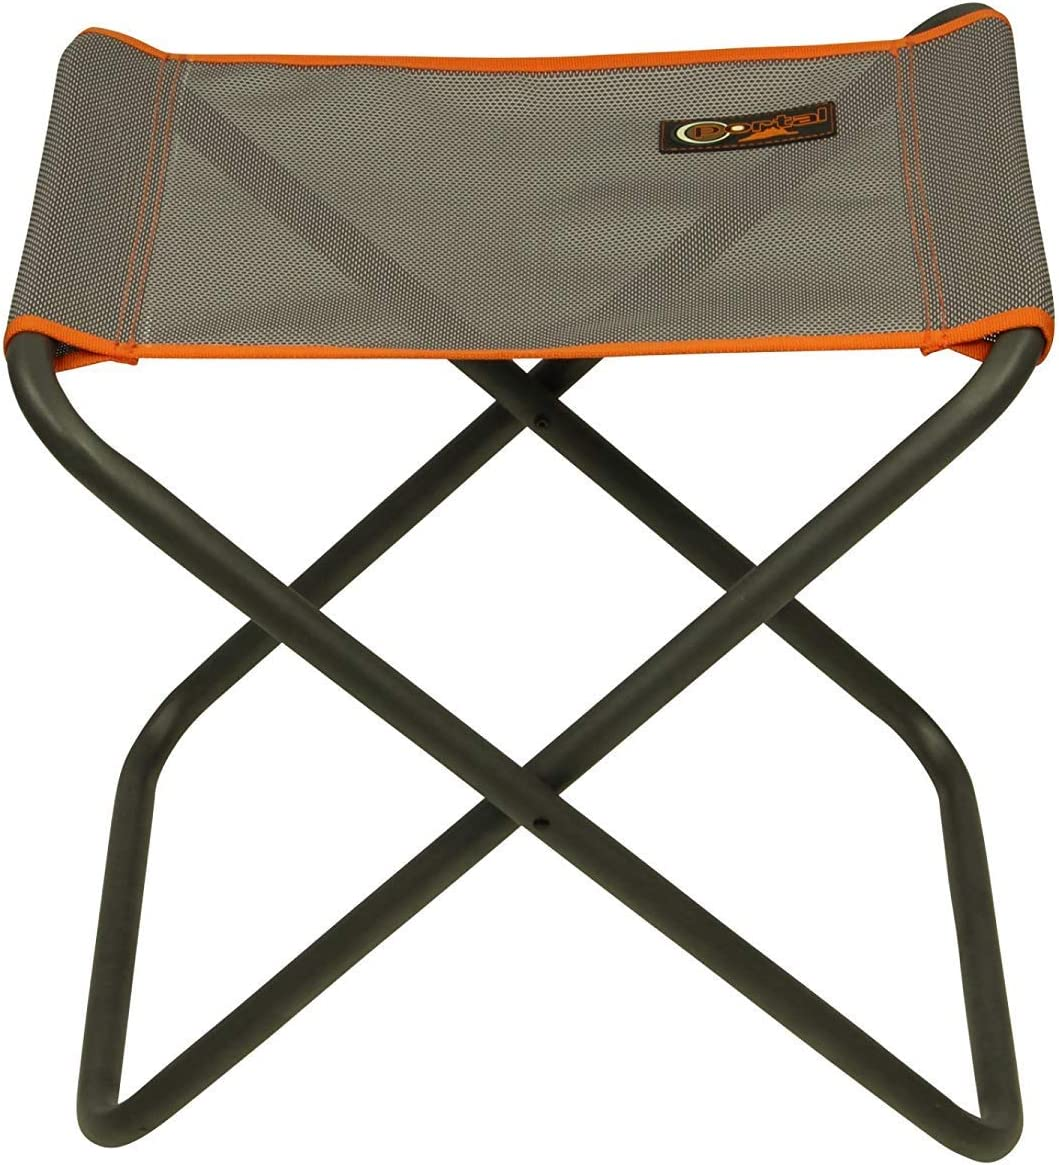 Portal Outdoor Unisexs Foldable Camping Stool